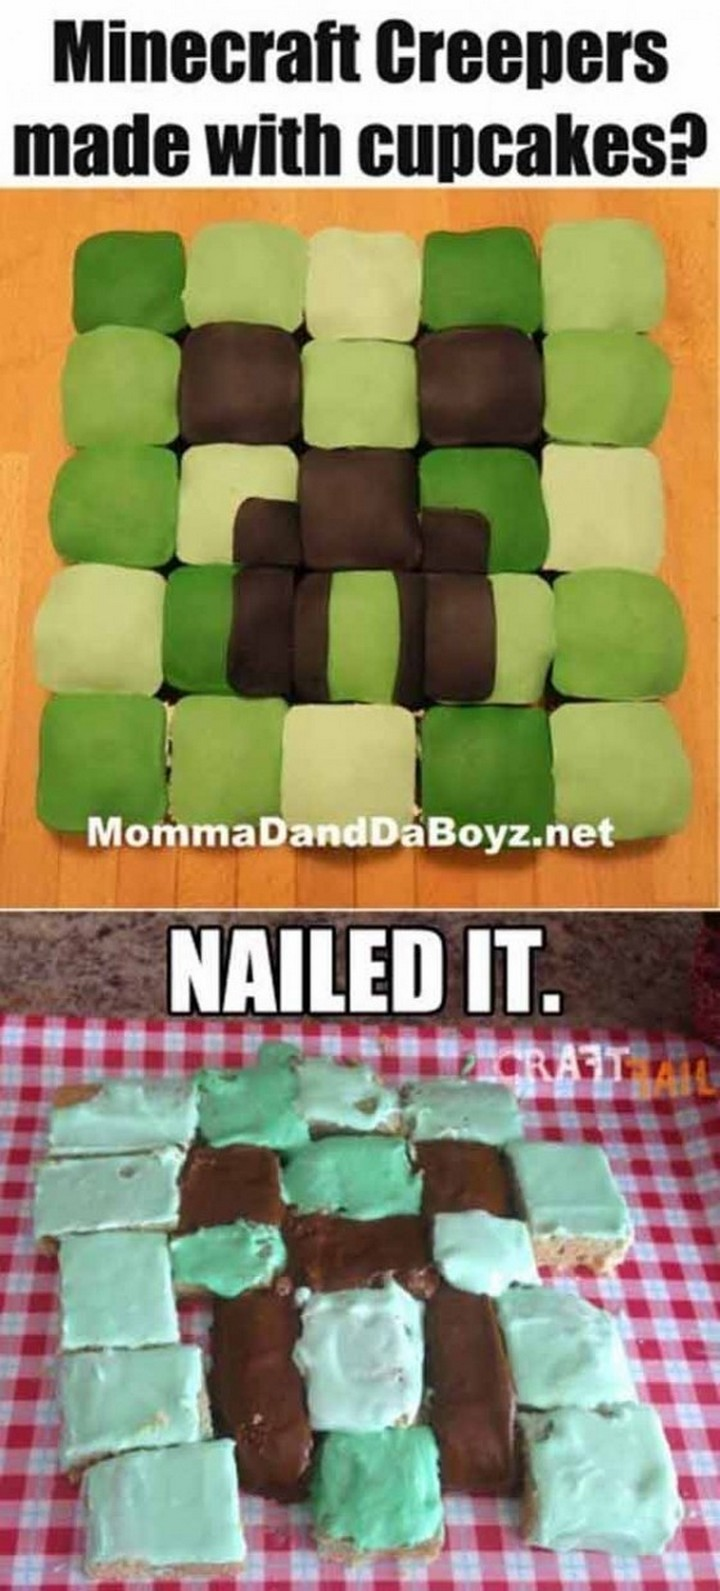 26 Pinterest Fails - It looked simple enough.